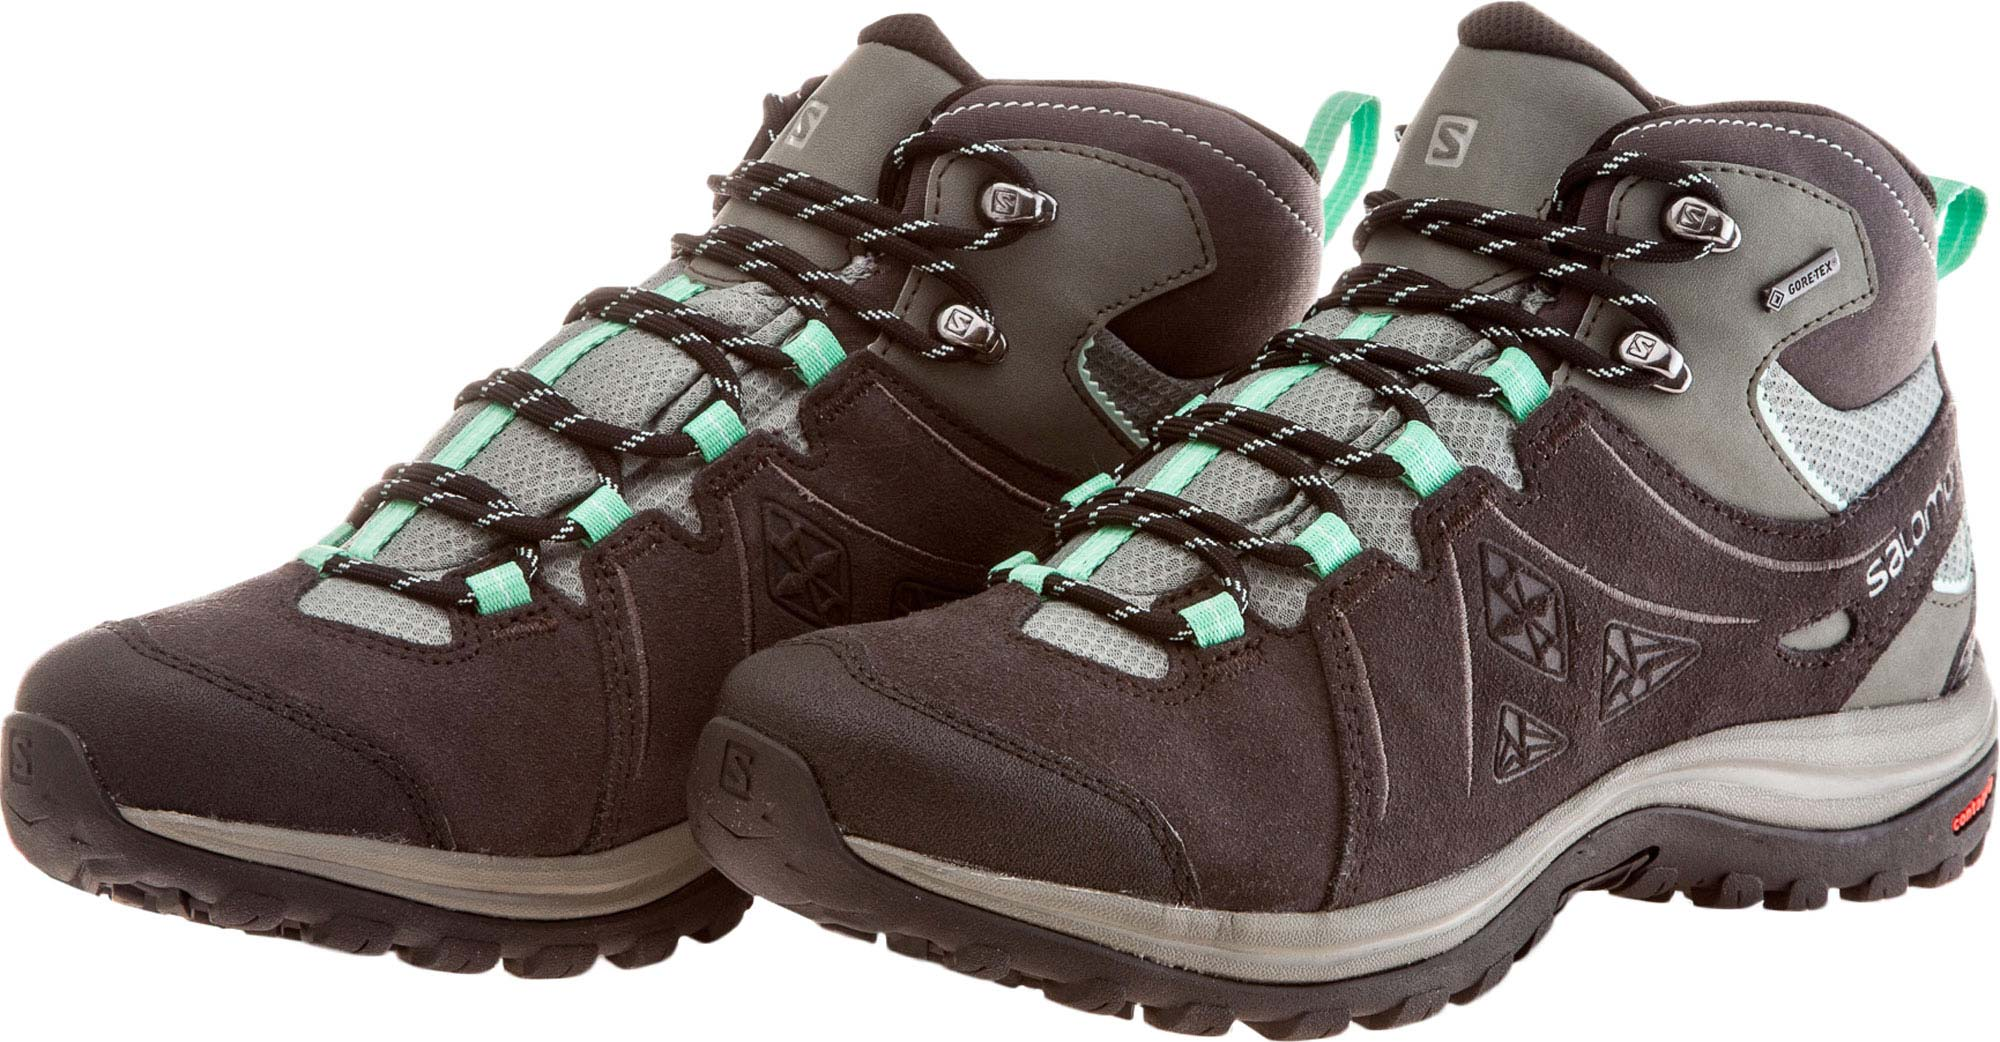 Salomon ELLIPSE 2 MID LTR GTX W. Women s trekking shoes. Women s trekking  shoes 3816a8543a3